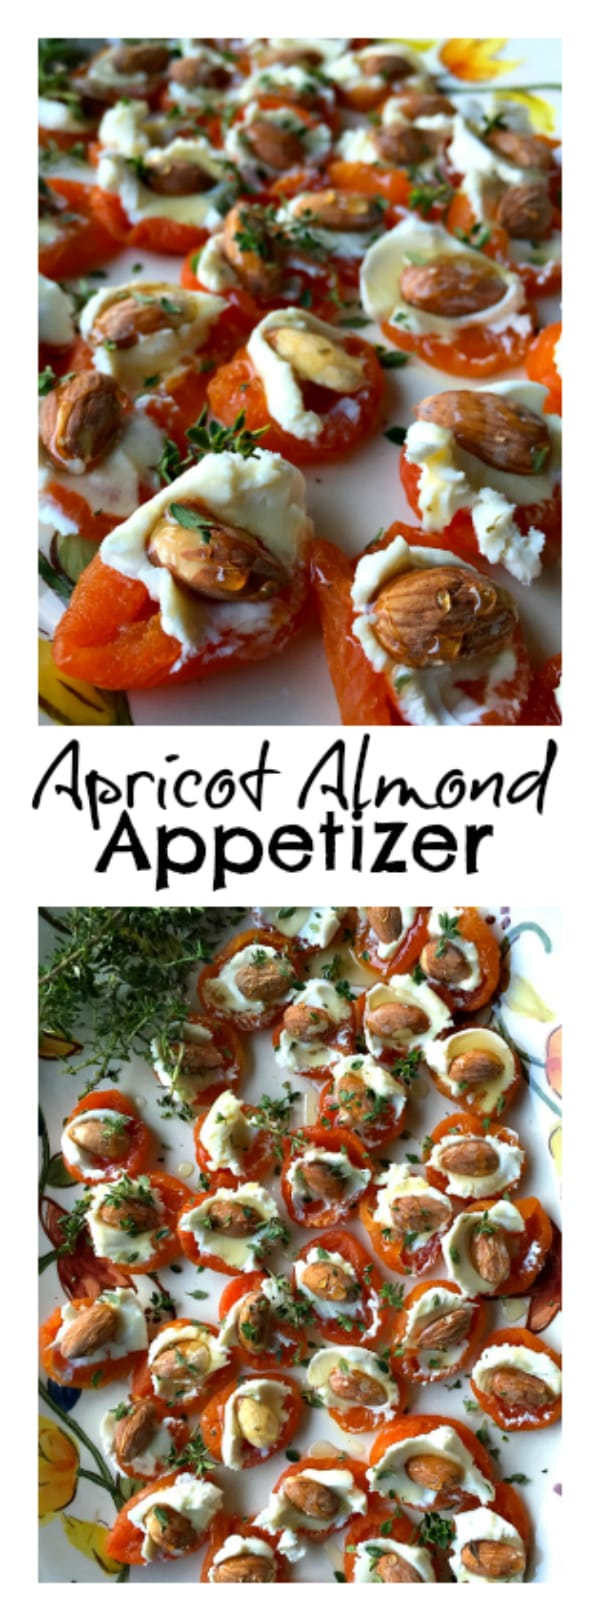 Apricot Almond Appetizer is the perfect lighter appetizer to bring to a party, and an excellent choice for gluten-free guests